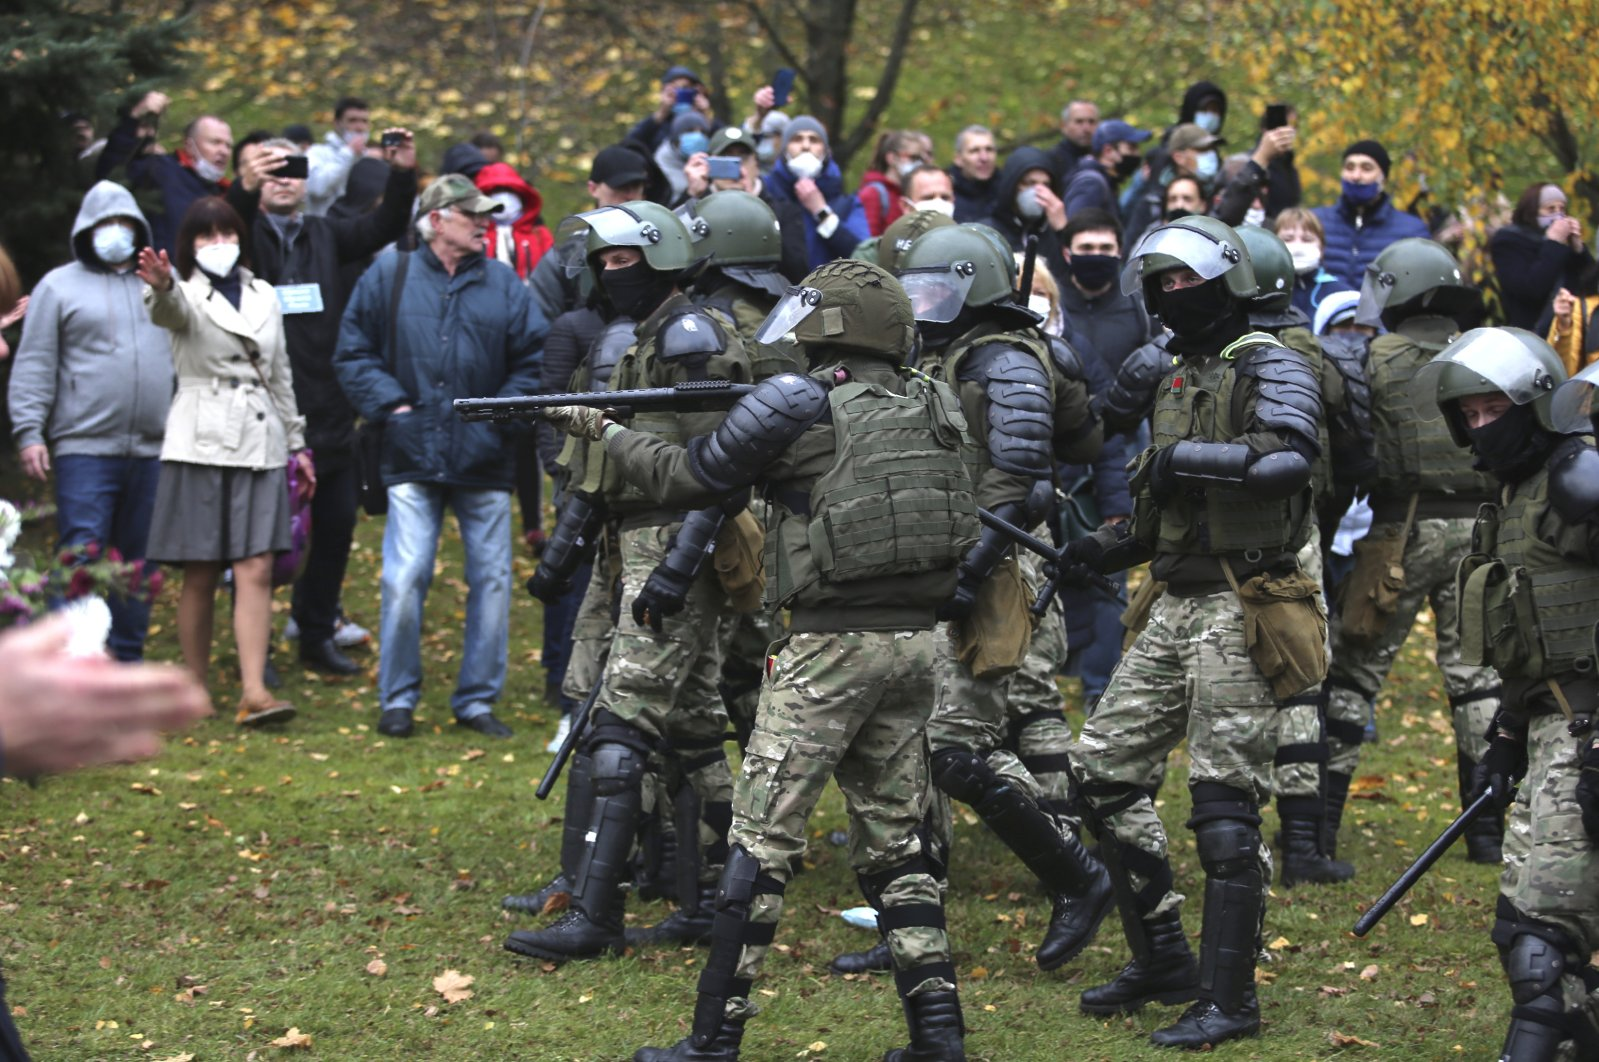 People argue with policemen during an opposition rally to protest the official presidential election results in Minsk, Belarus, Nov. 1, 2020. (AP Photo)